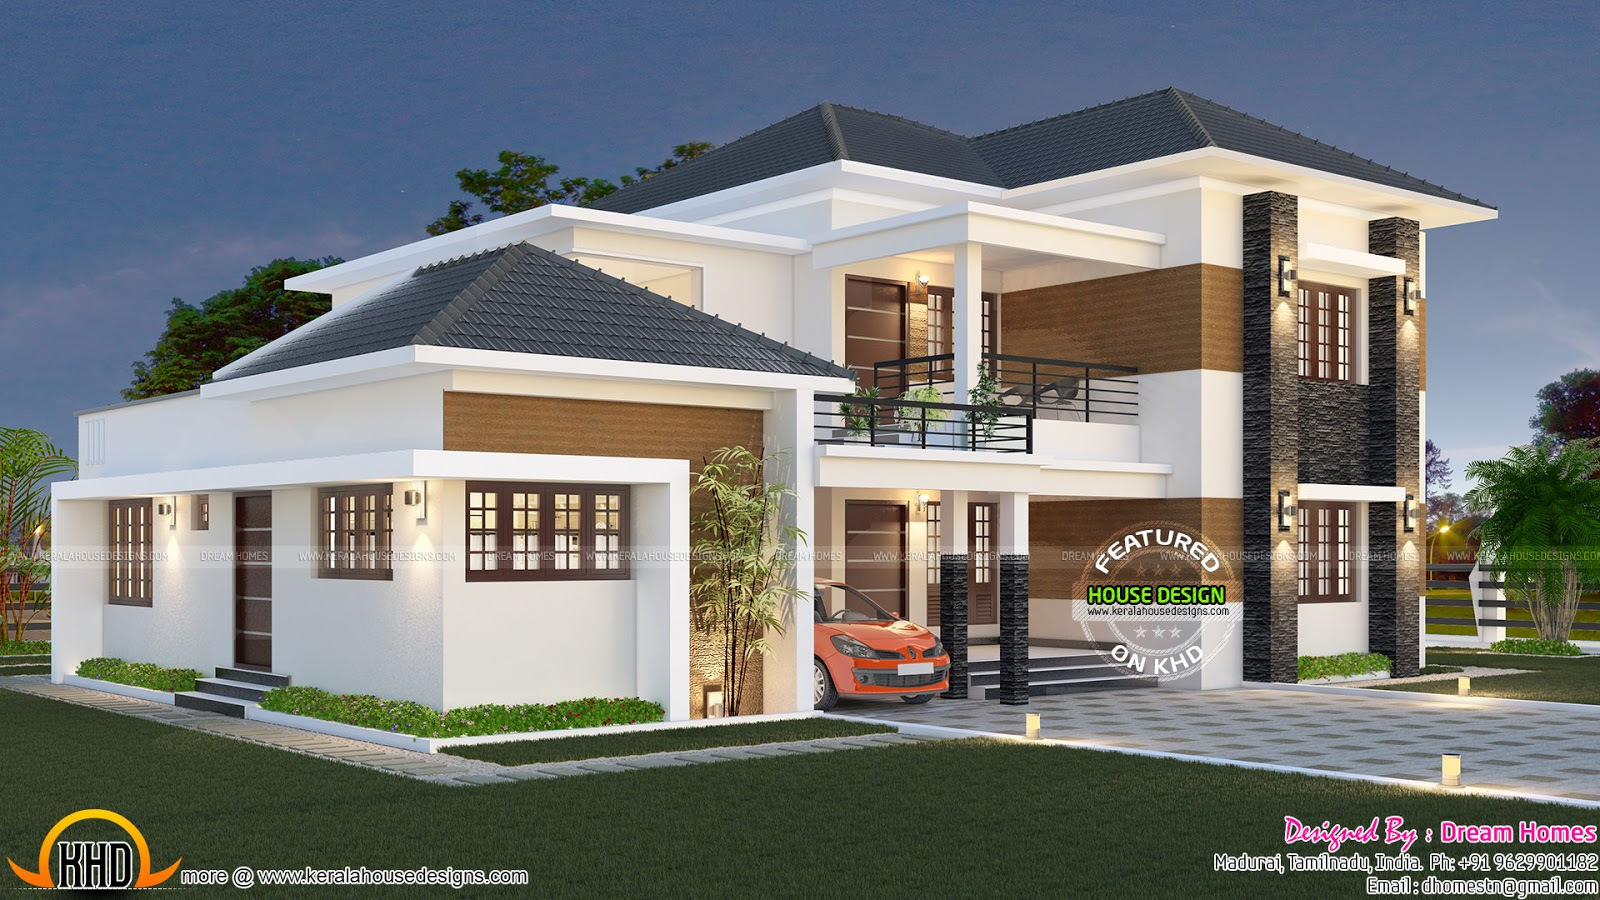 Elegant south indian villa kerala home design and floor South indian style house plans with photos